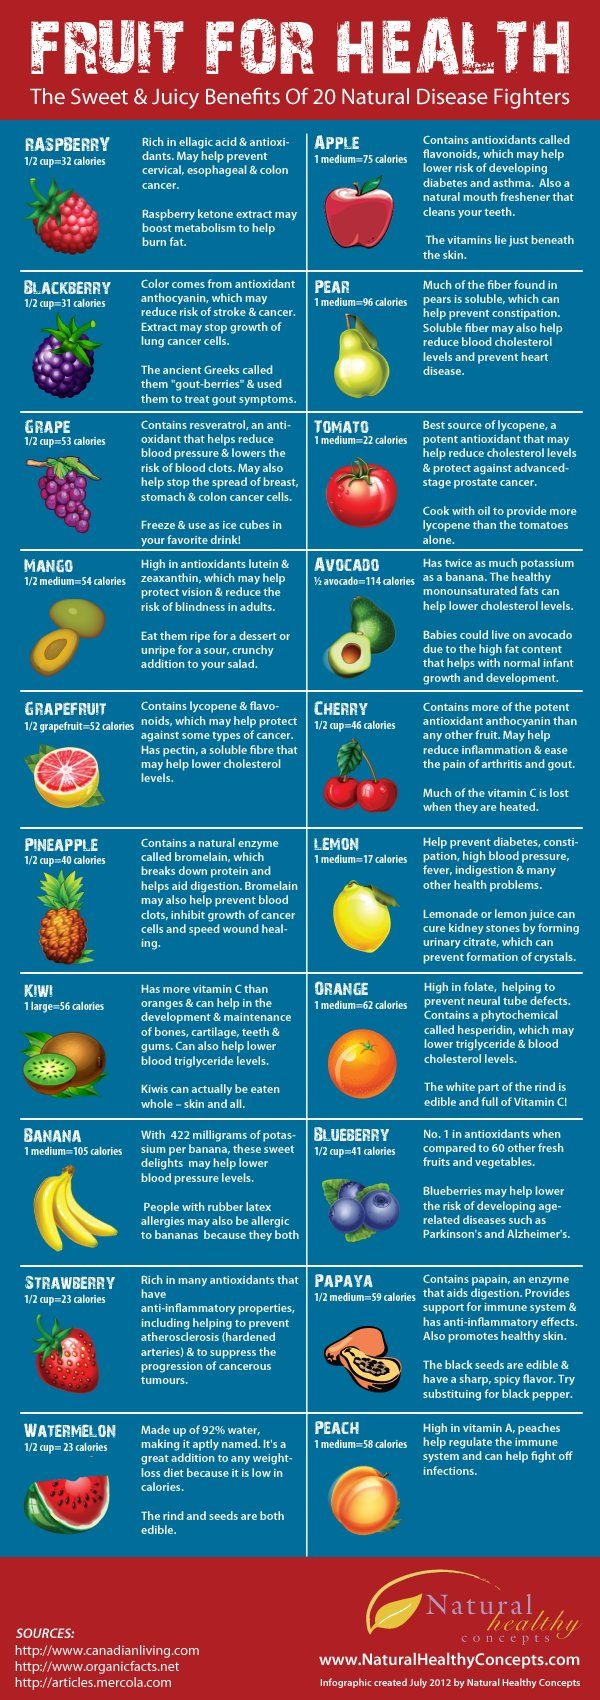 The Disease-Fighting Benefits Of Fruit (Infographic)